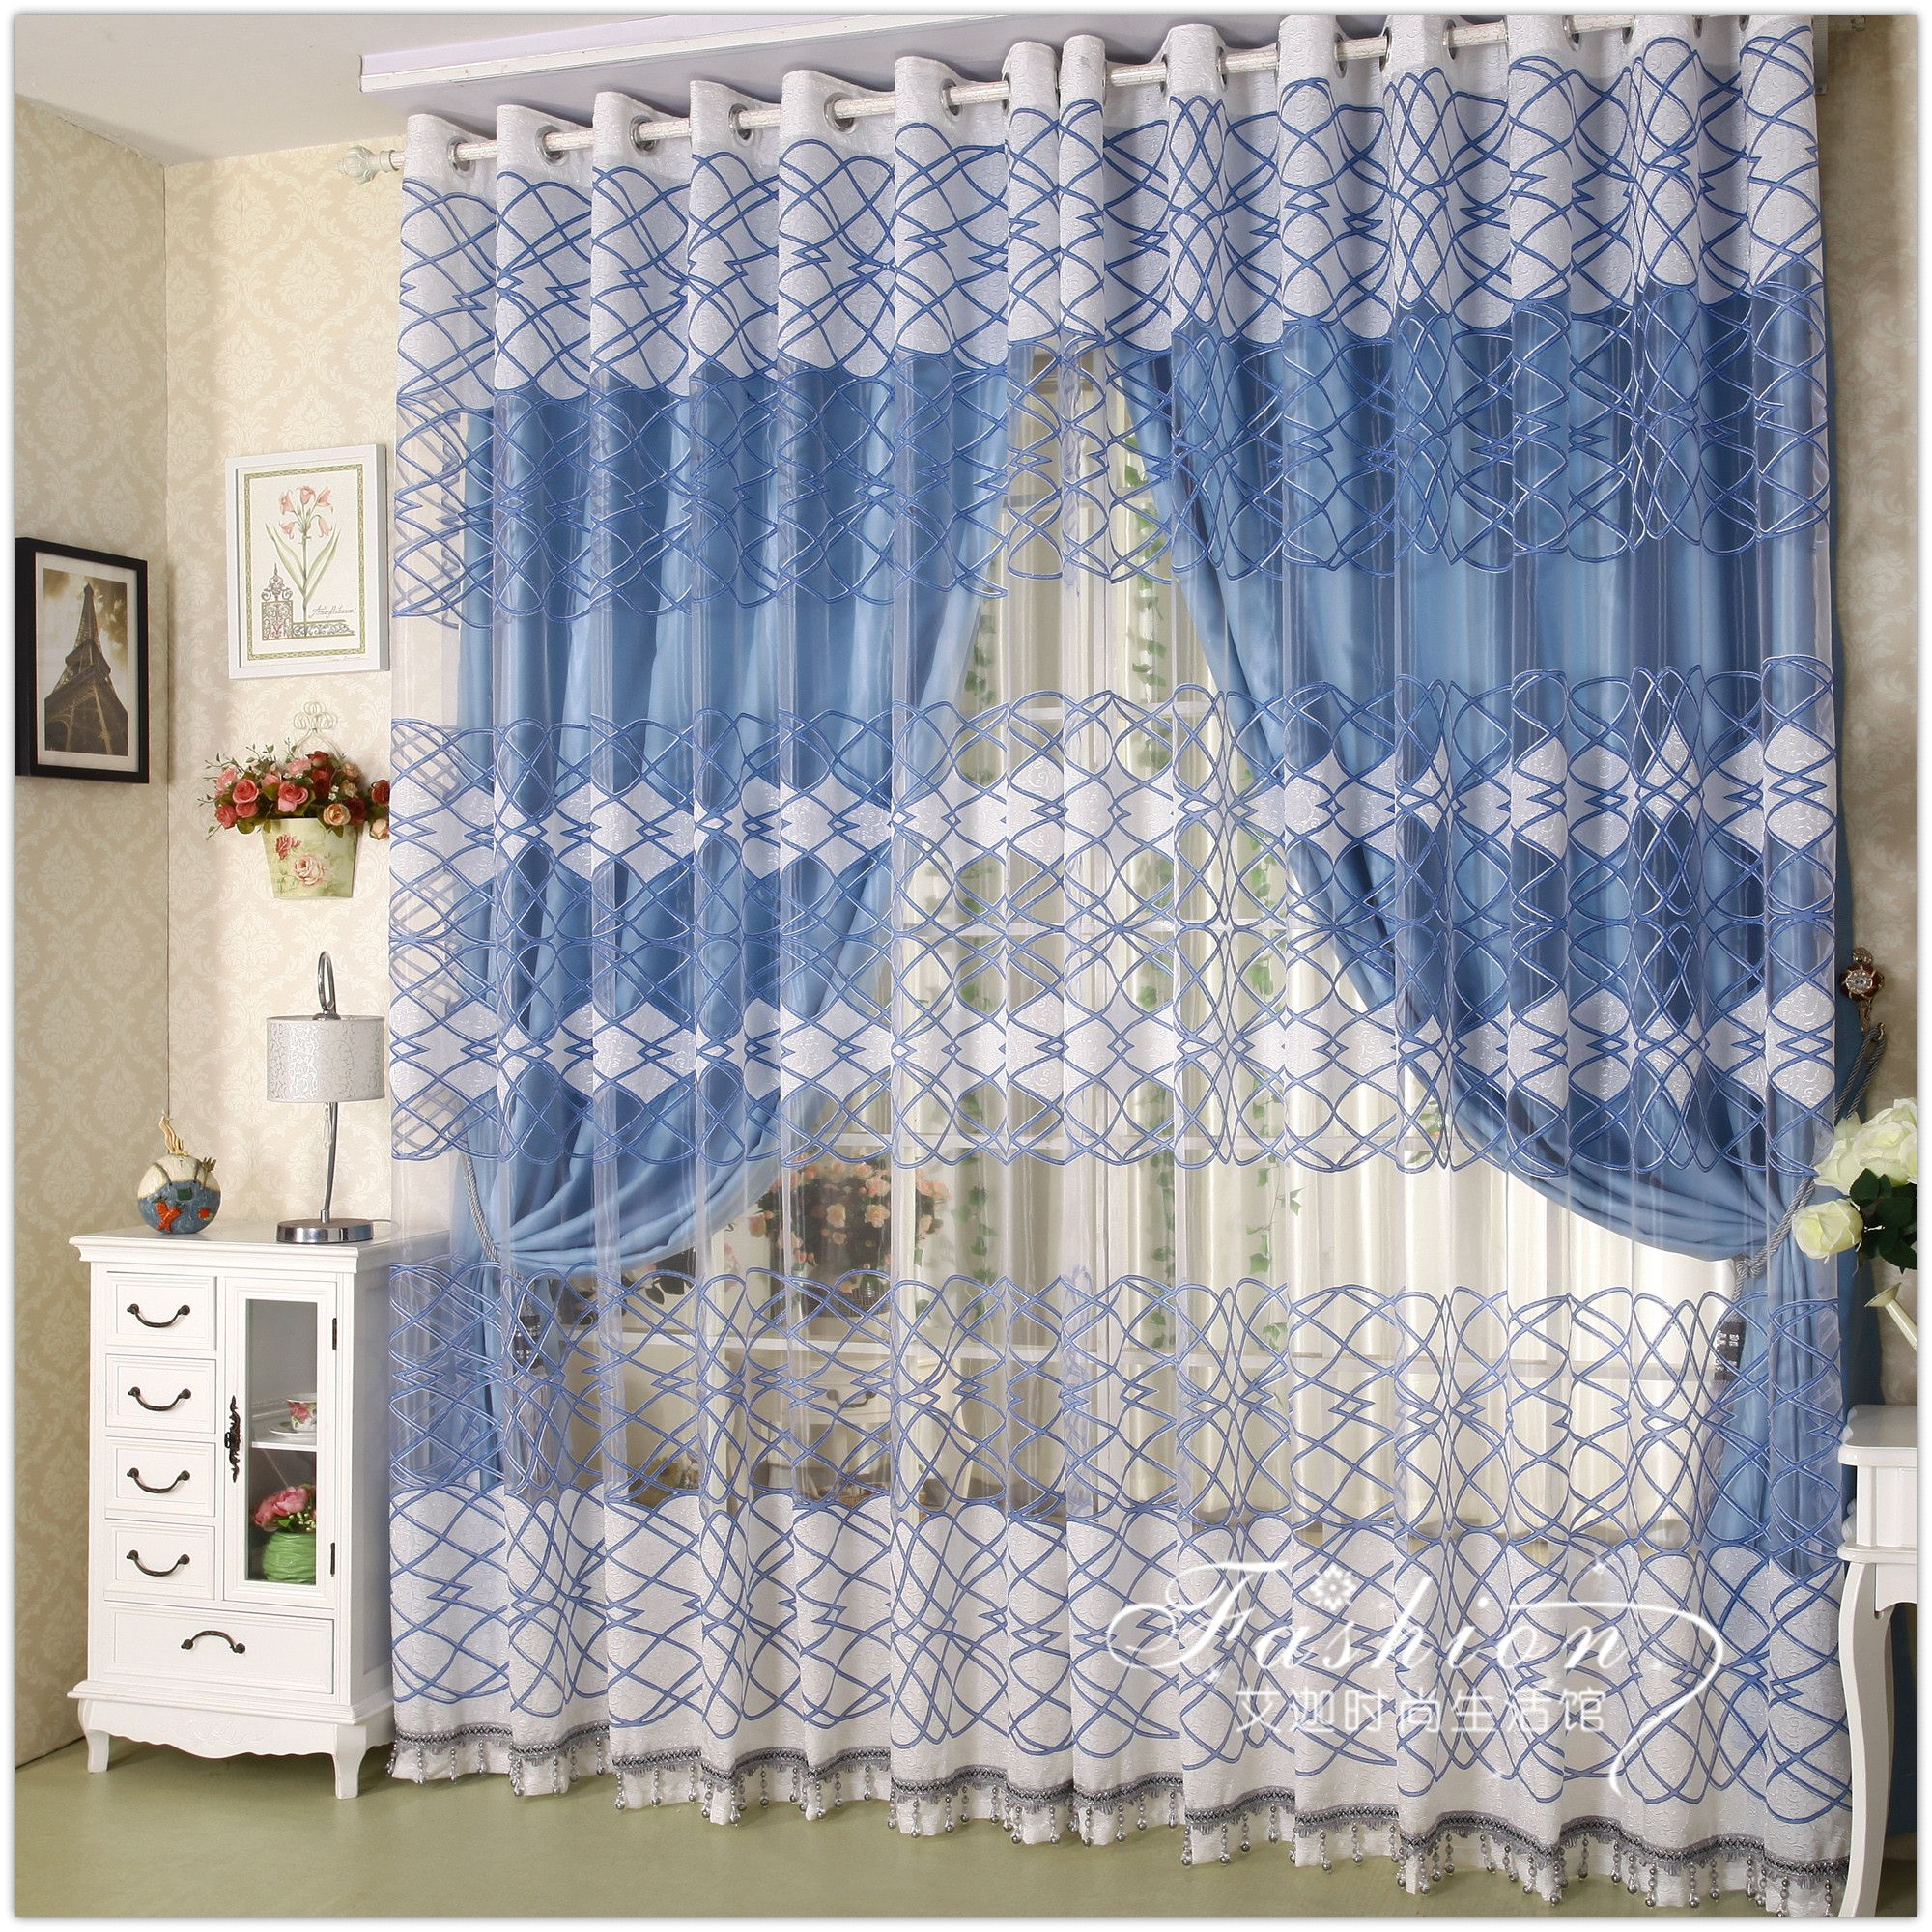 Cotton Curtains For Every Room